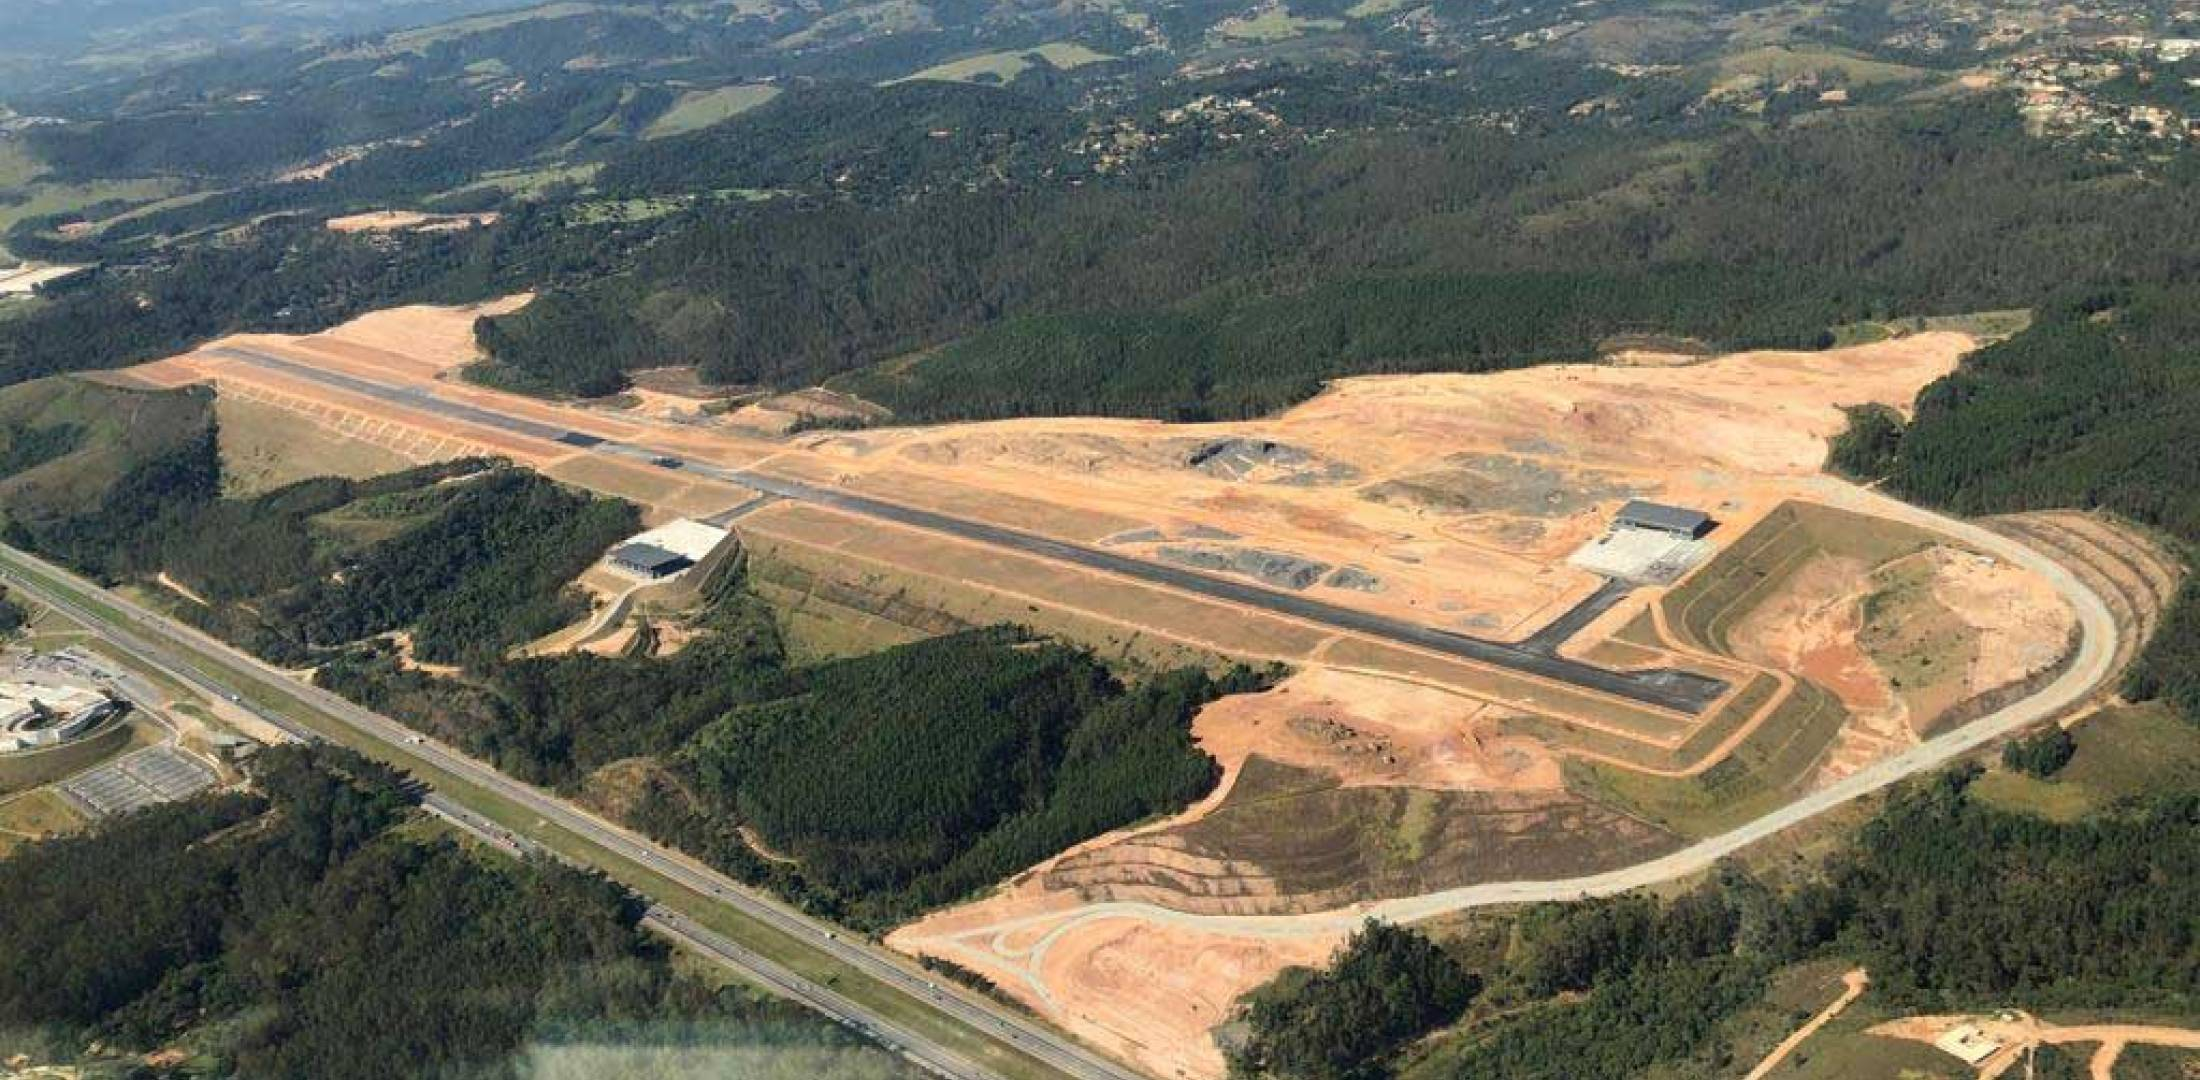 Catarina Executive Airport, Brazil